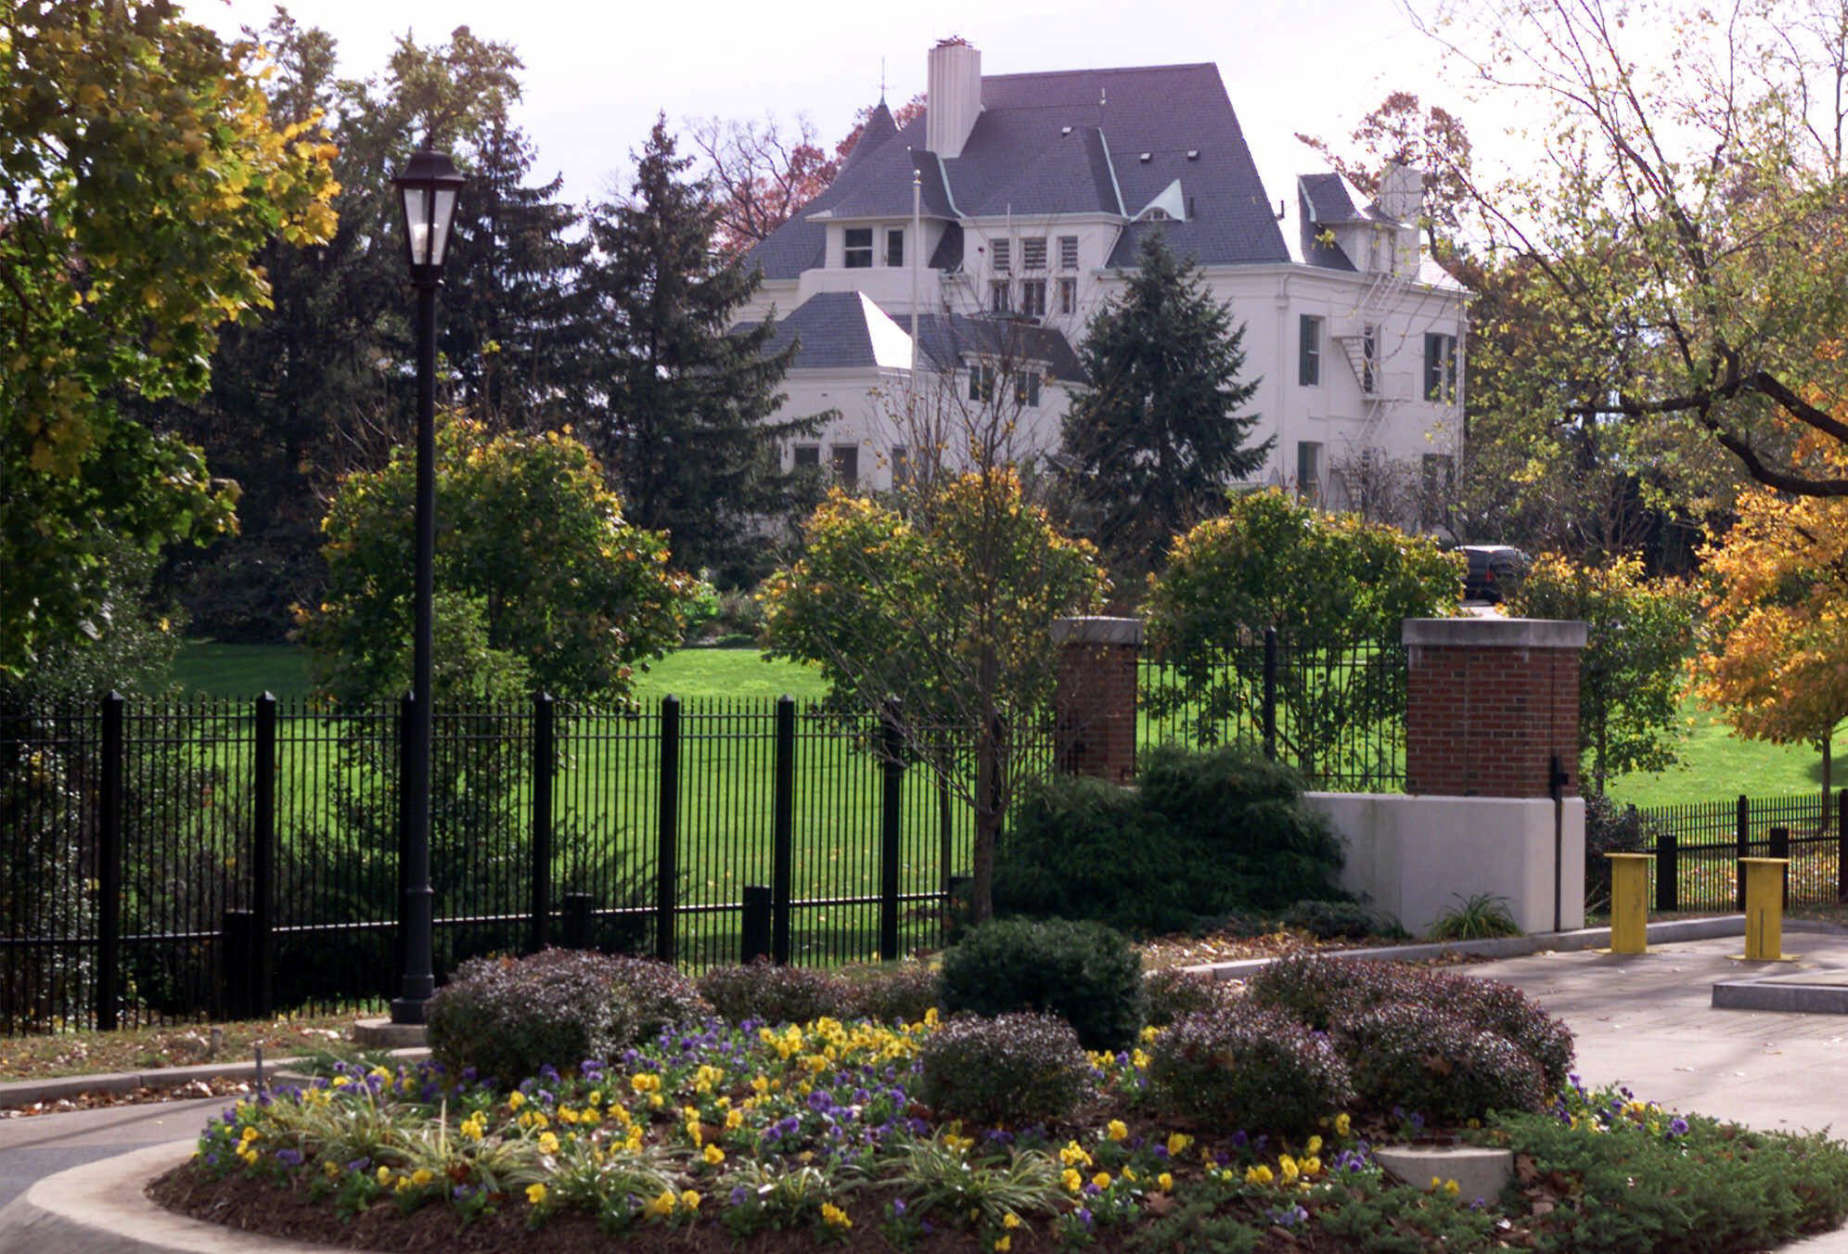 The vice president's residence at the Naval Observatory in Washington is shown in a Nov. 11, 2000 photo. Settling in on the hill once known as Pretty Prospect, the Cheneys have put their own stamp on the white brick Victorian. (AP Photo/J Scott Applewhite)